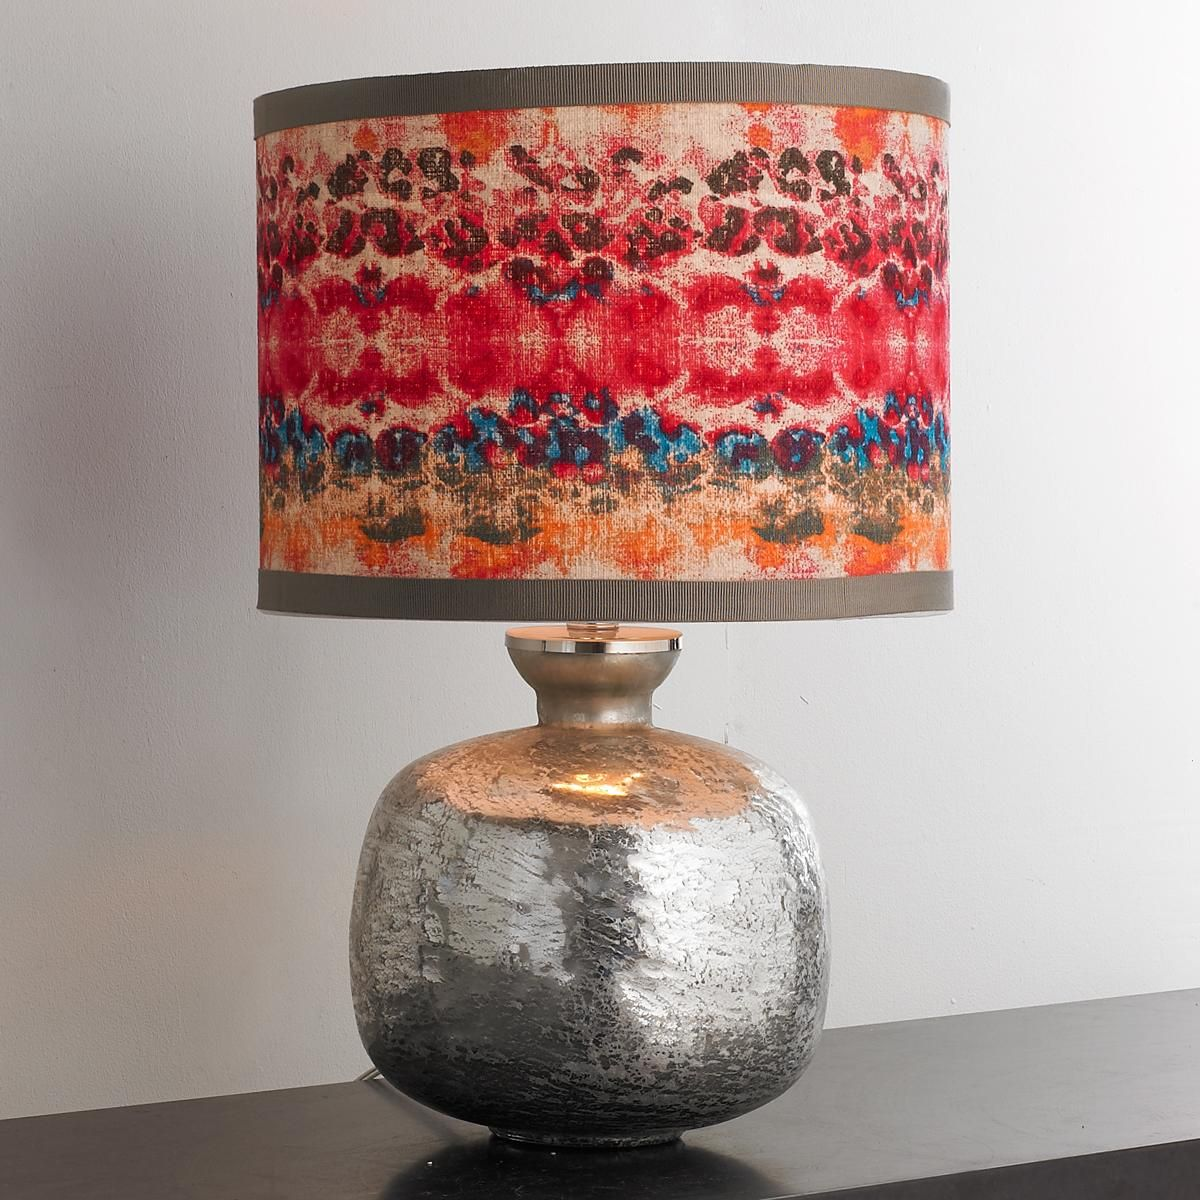 Etched Mercury Glass Jar Table Lamp Glass Jar Table Lamp Mercury Glass Lamp Unique Table Lamps #red #table #lamps #for #living #room